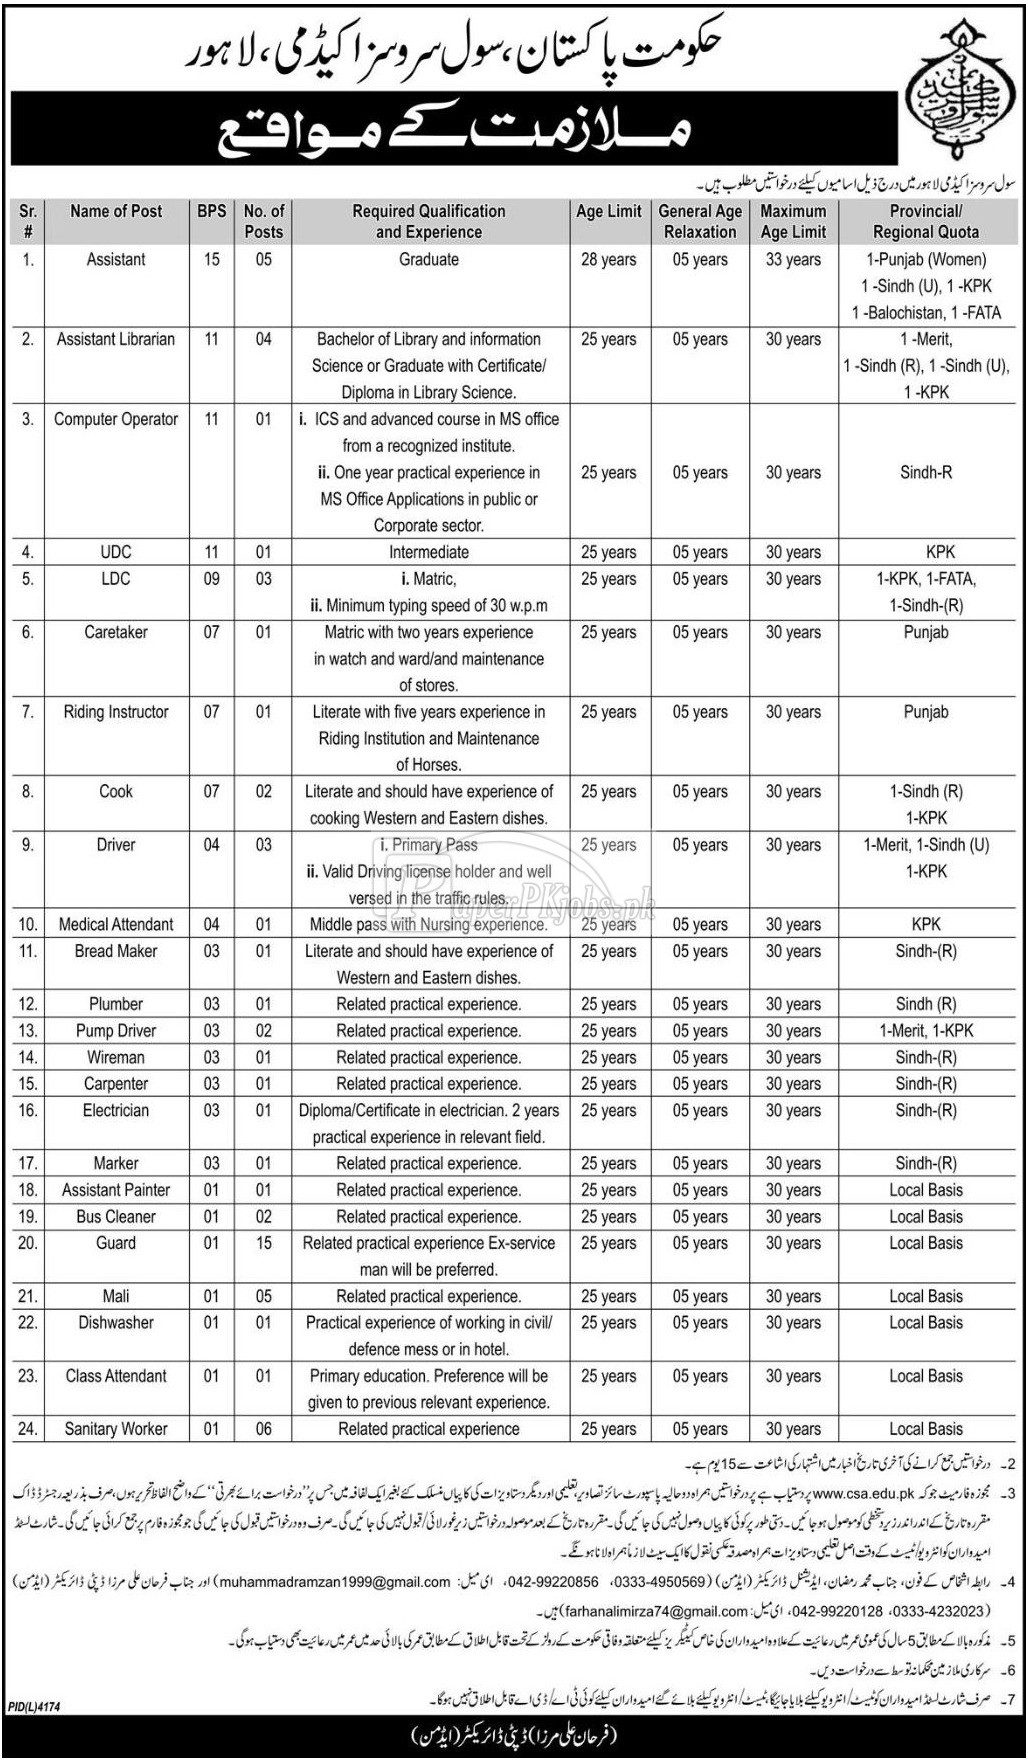 Civil Services Academy Lahore Jobs 2018